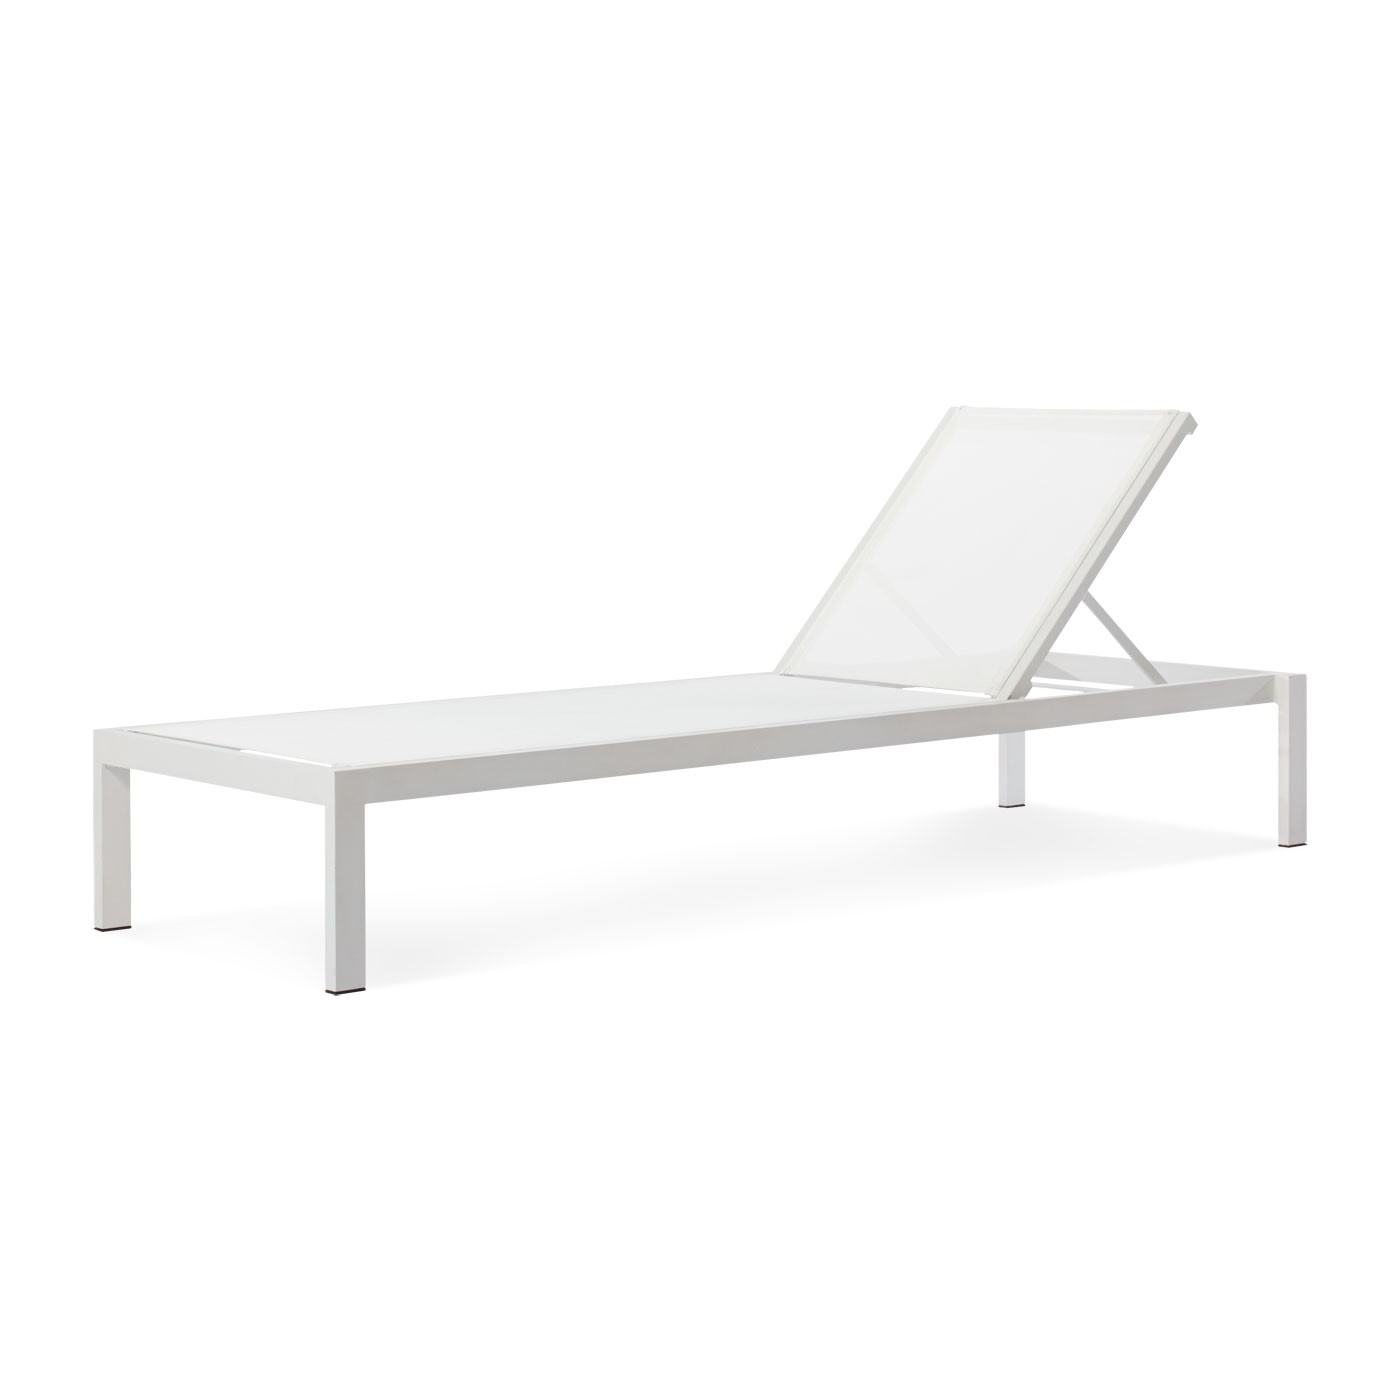 P Pertaining To Newest Chaise Lounge Sun Chairs (View 11 of 15)